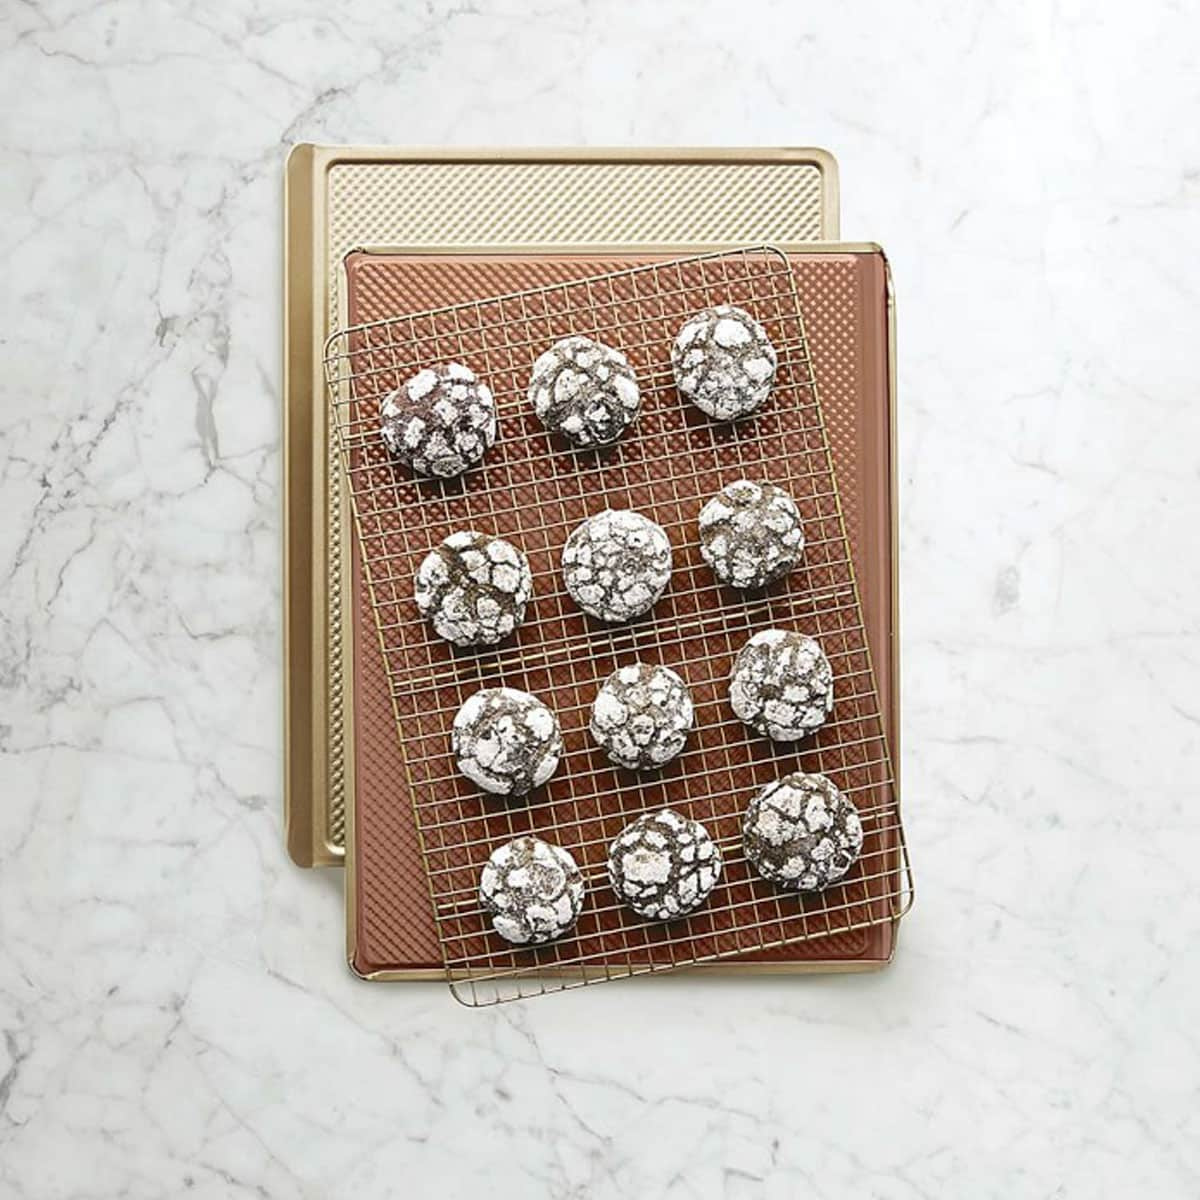 10 Gifts for the Cook Who Loves to Bake: gallery image 10